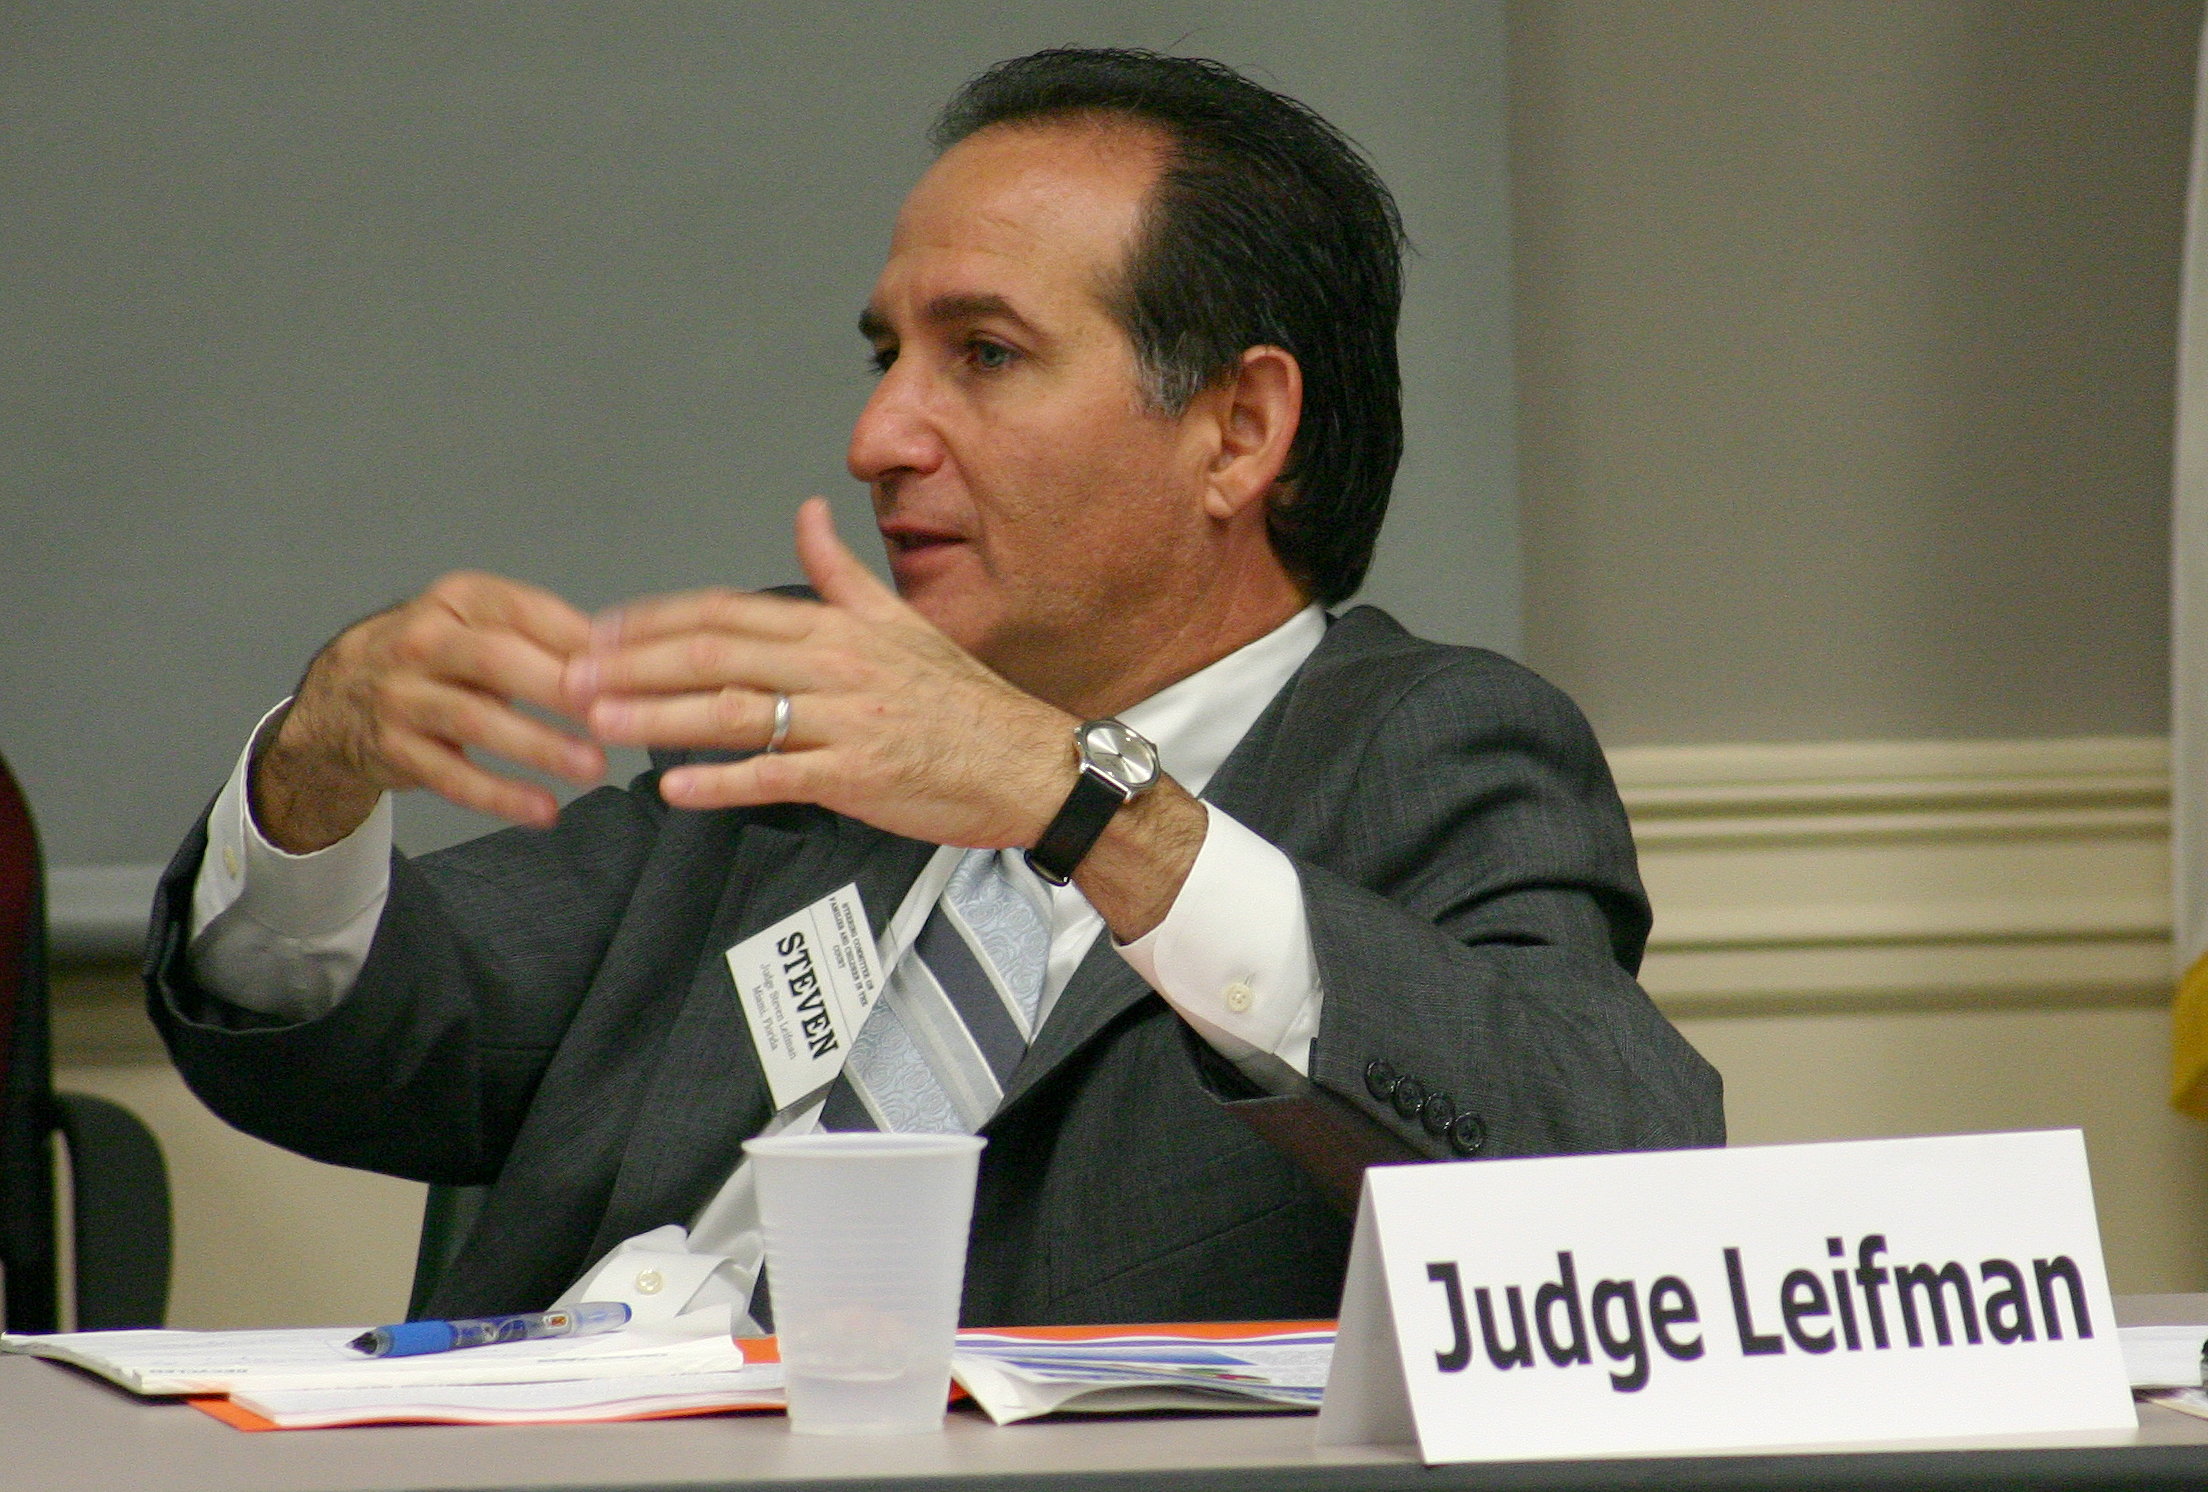 Judge Steve Leifman, Miami-Dade, Presented receives 2015 Chief Justice Award for Judicial Excellence